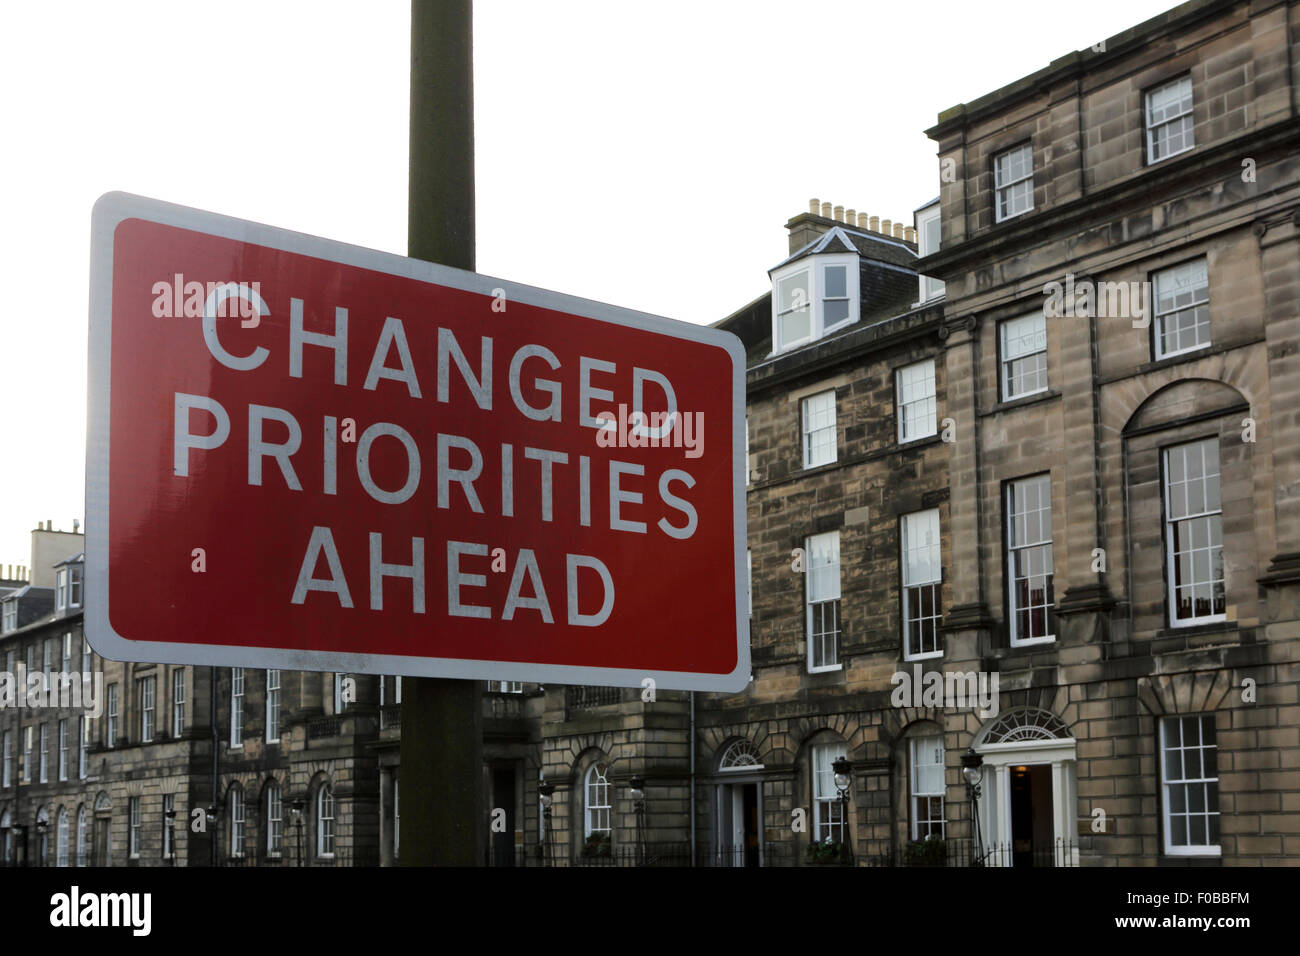 A sign reads 'Changed Priorities Ahead' in Edinburgh, Scotland. The sign stands close to Georgian buildings. - Stock Image